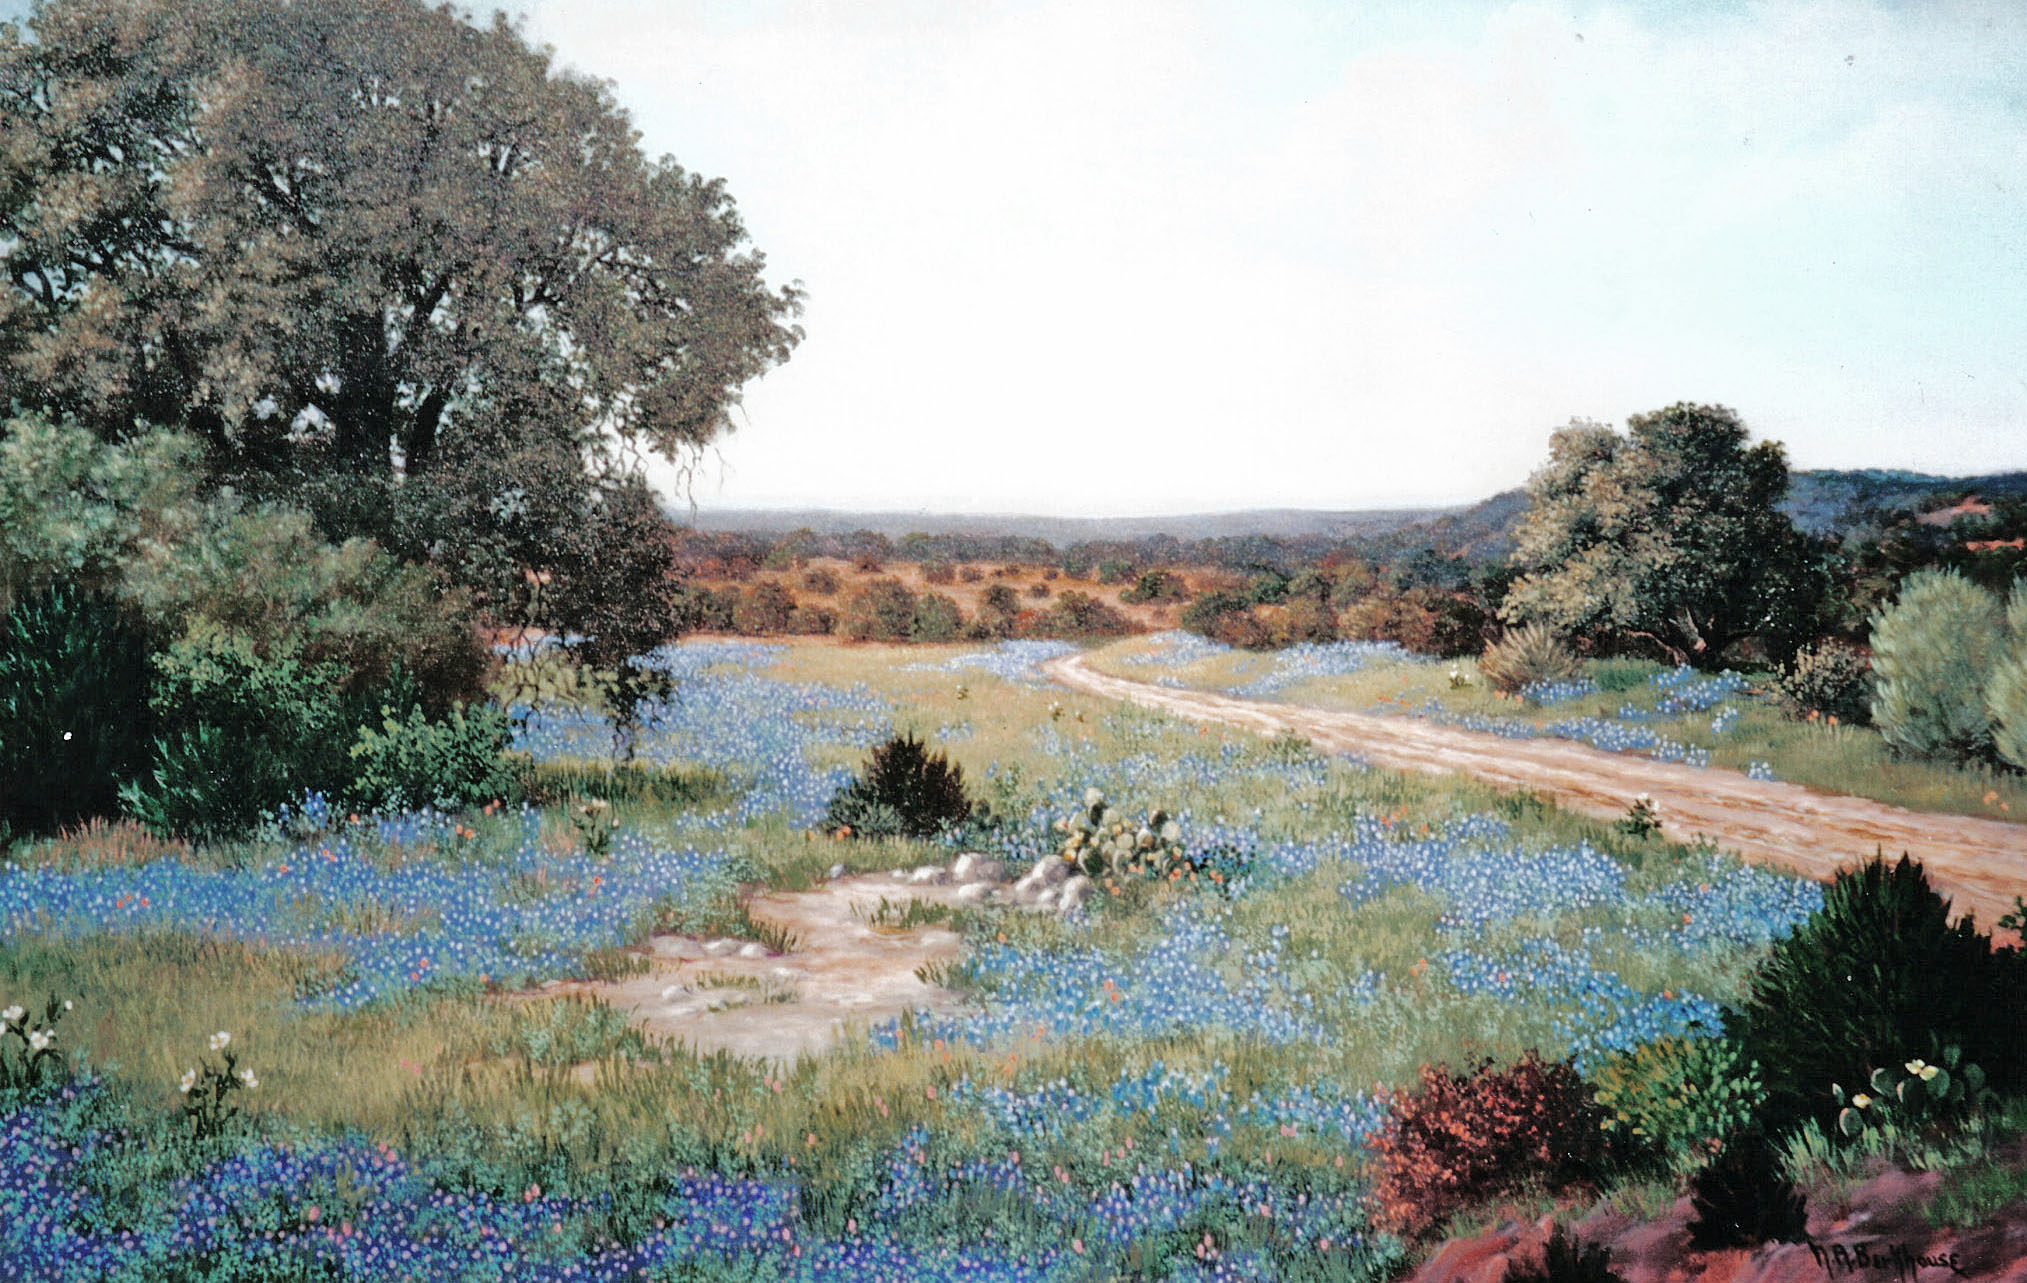 Bluebonnet Wonderland